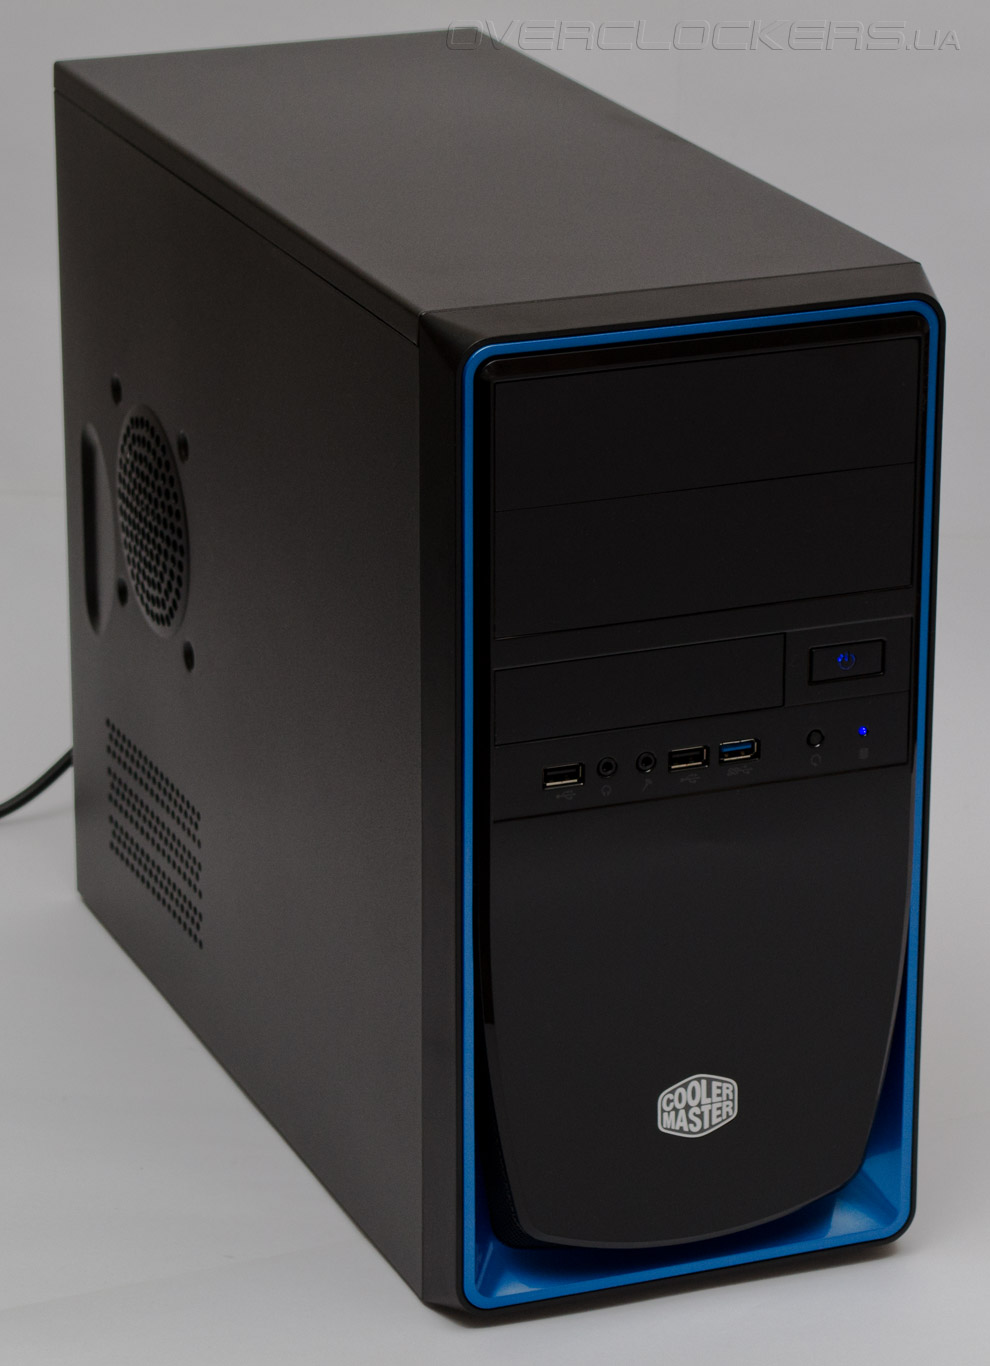 Пэвм m5000ba (m530llga): a8 3870k/ 4 гб/ 1 тб/ 2 гб geforce gtx650/ dvdrw/ win7 premium